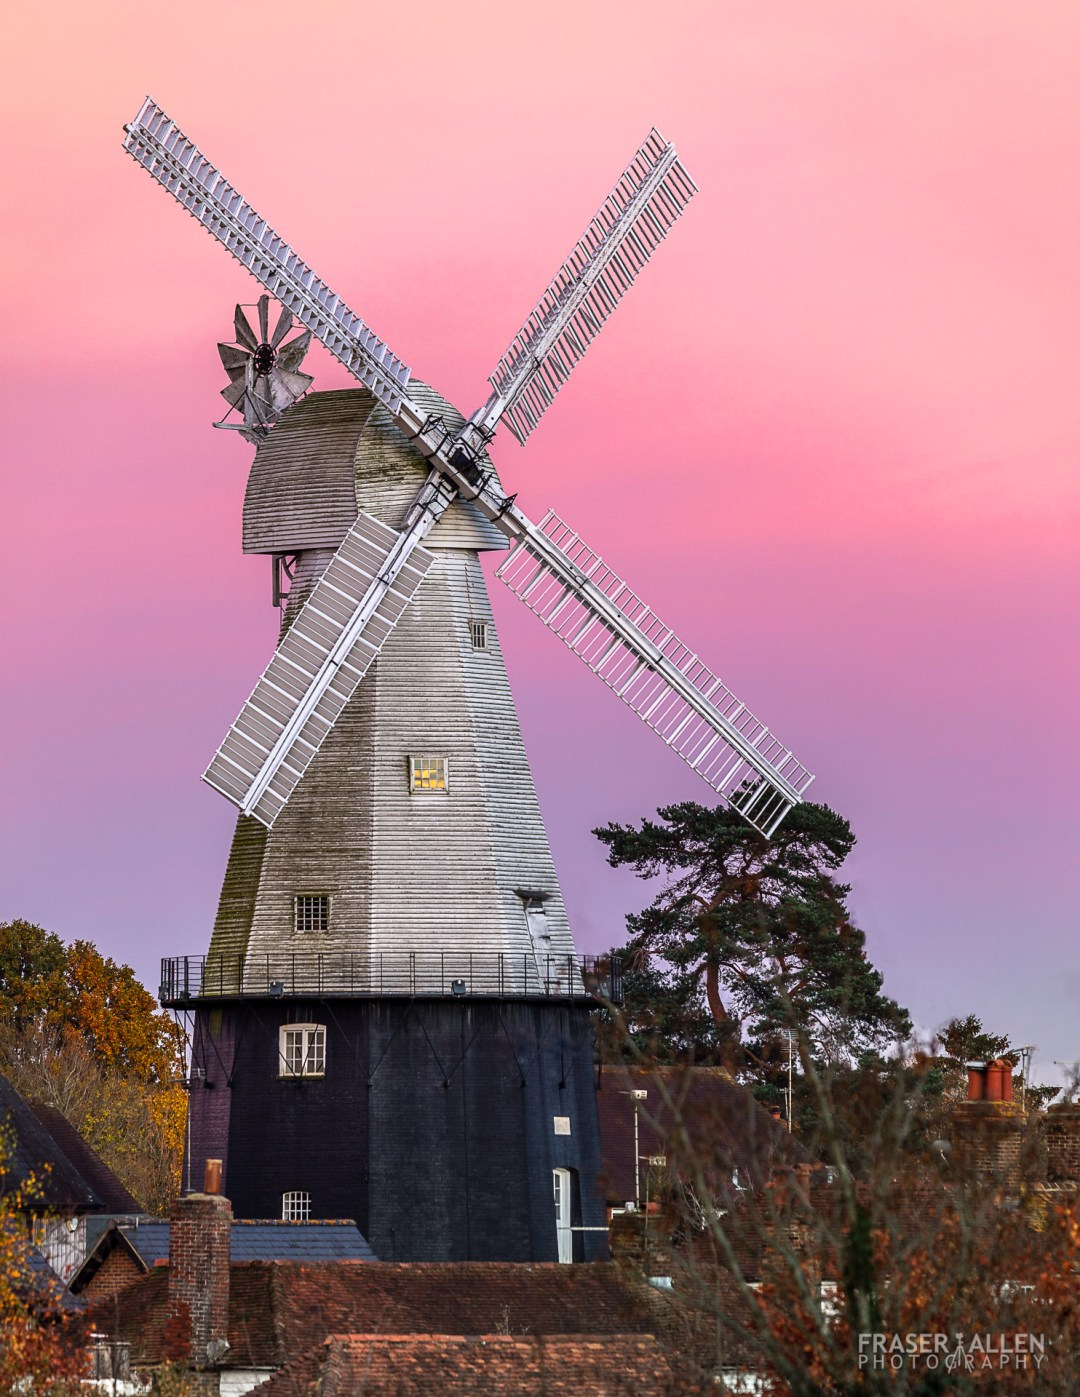 Cranbrook's Union Mill at sunset